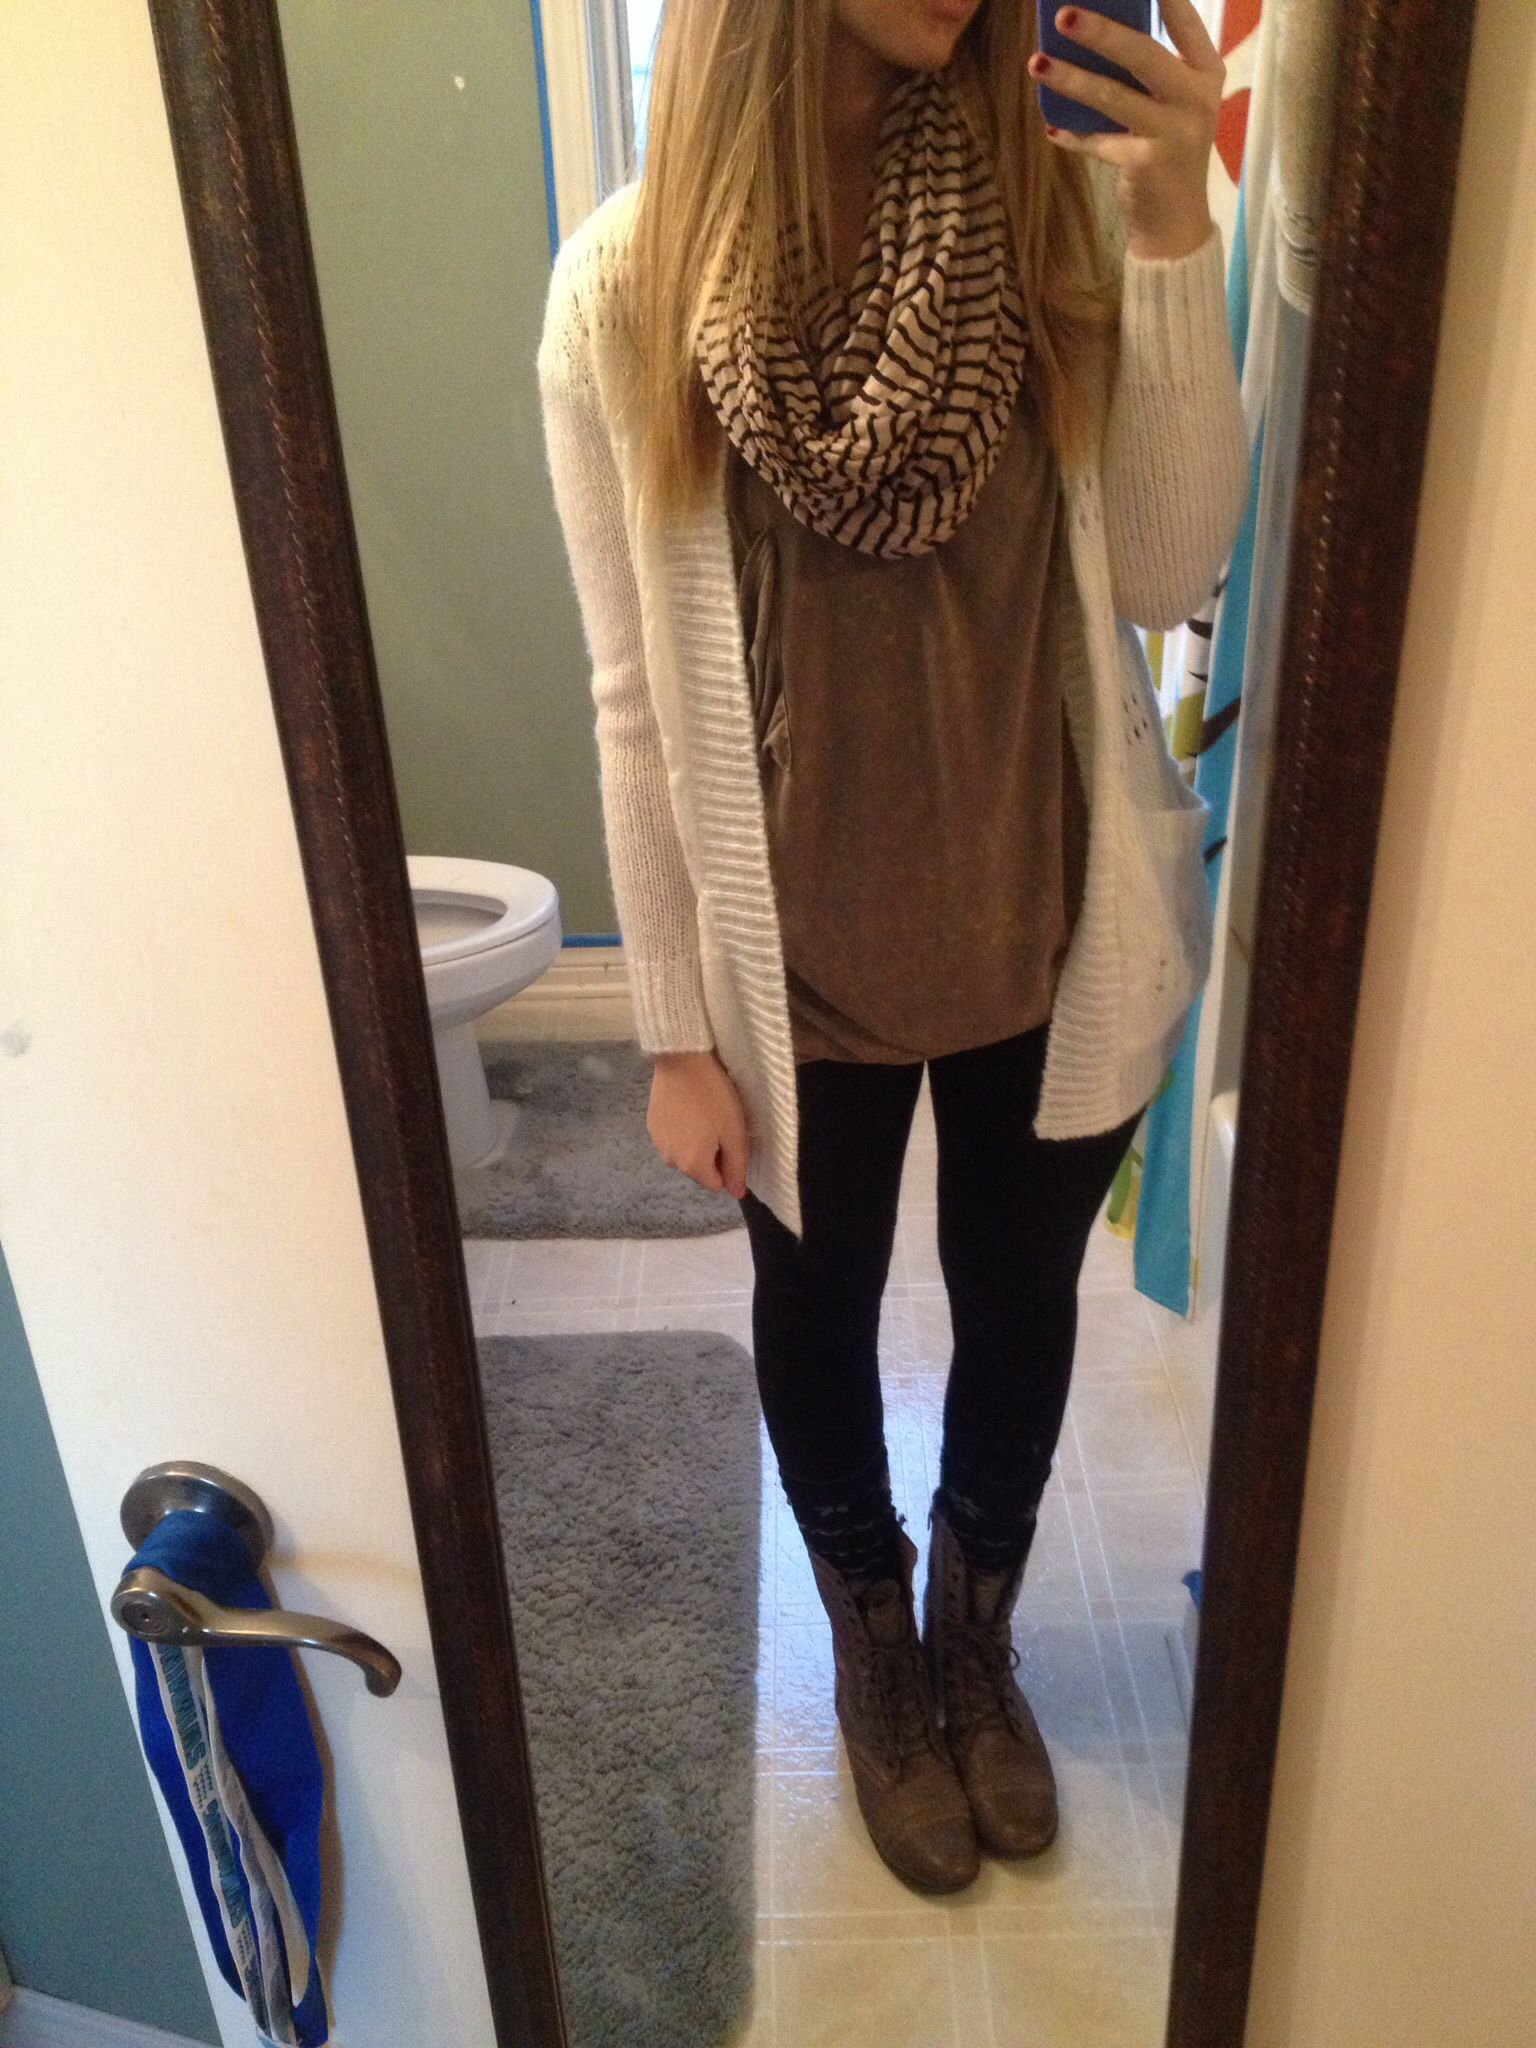 Large Dull Green Shirt, Creme Cardigan, Tan And Black Striped